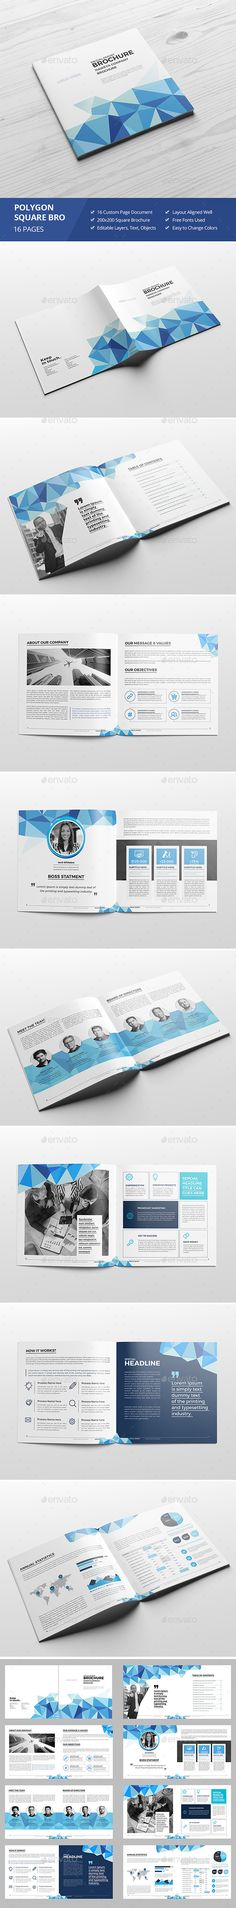 Haweya Polygon Square Brochure — InDesign Template #marketing #indesign • Download ➝ https://graphicriver.net/item/haweya-polygon-square-brochure/18582031?ref=pxcr